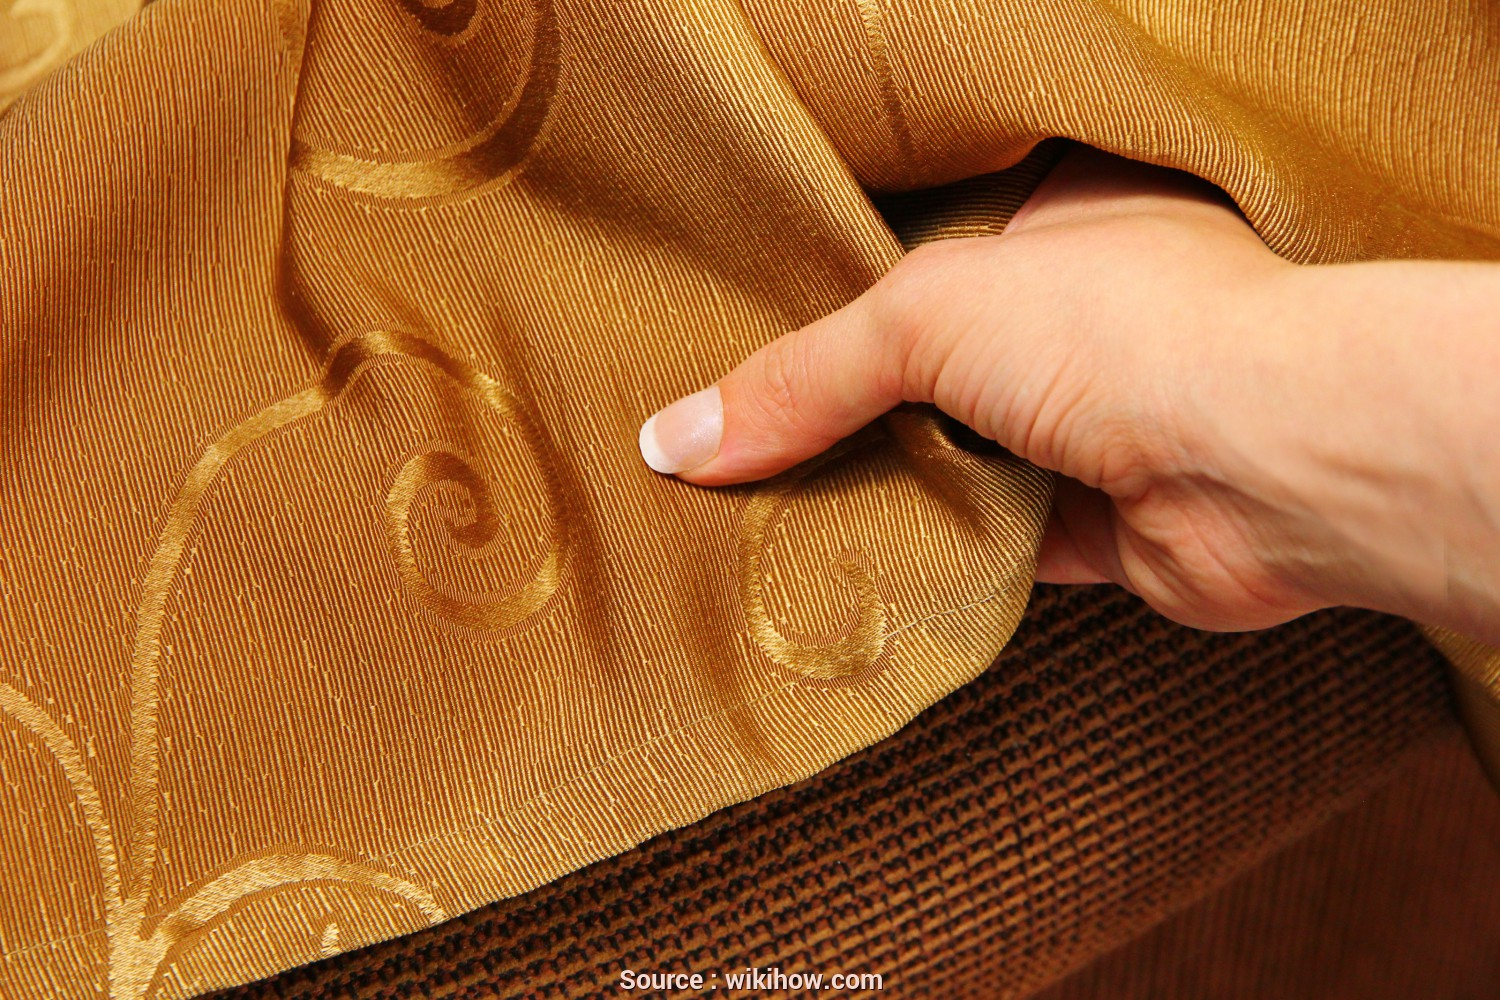 Ikea Klippan Sofa Cover Washing Instructions, Bellissima How To Wash Slipcovers: 7 Steps (With Pictures), WikiHow